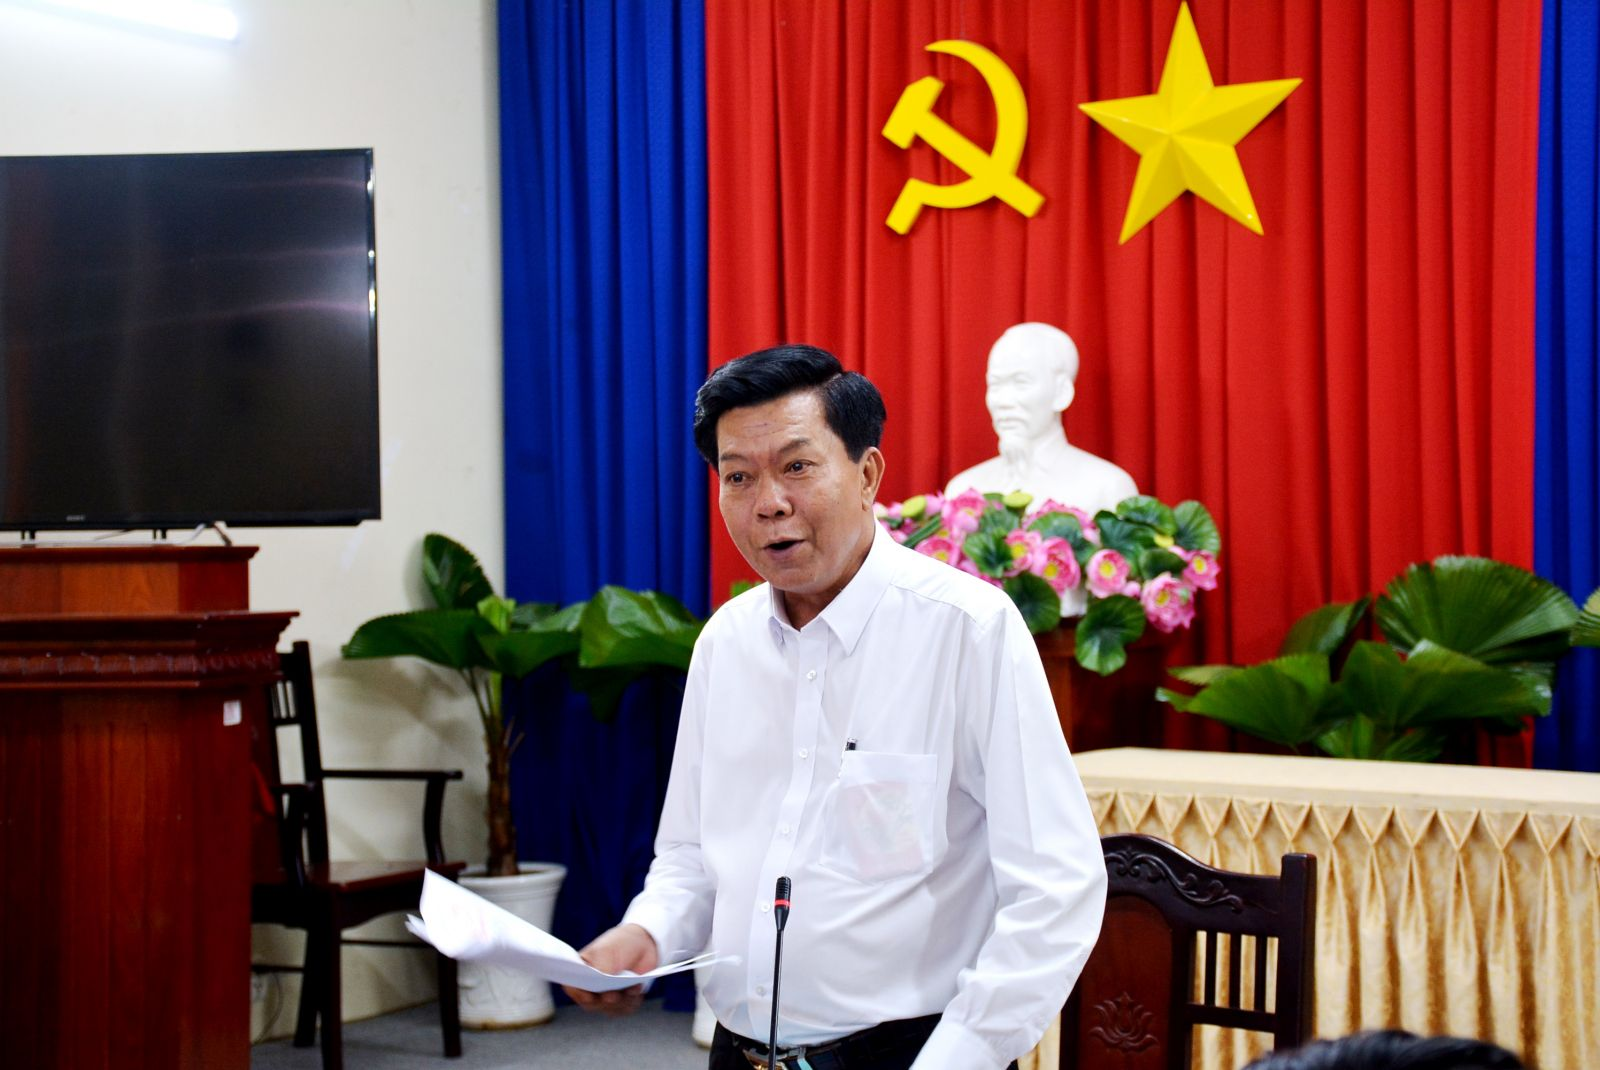 Chairman of the Provincial People's Committee, Head of the Provincial Steering Committee 389 - Tran Van Can recognizes and praises the achievements and efforts of the forces in the prevention and combat of smuggling and trade fraud